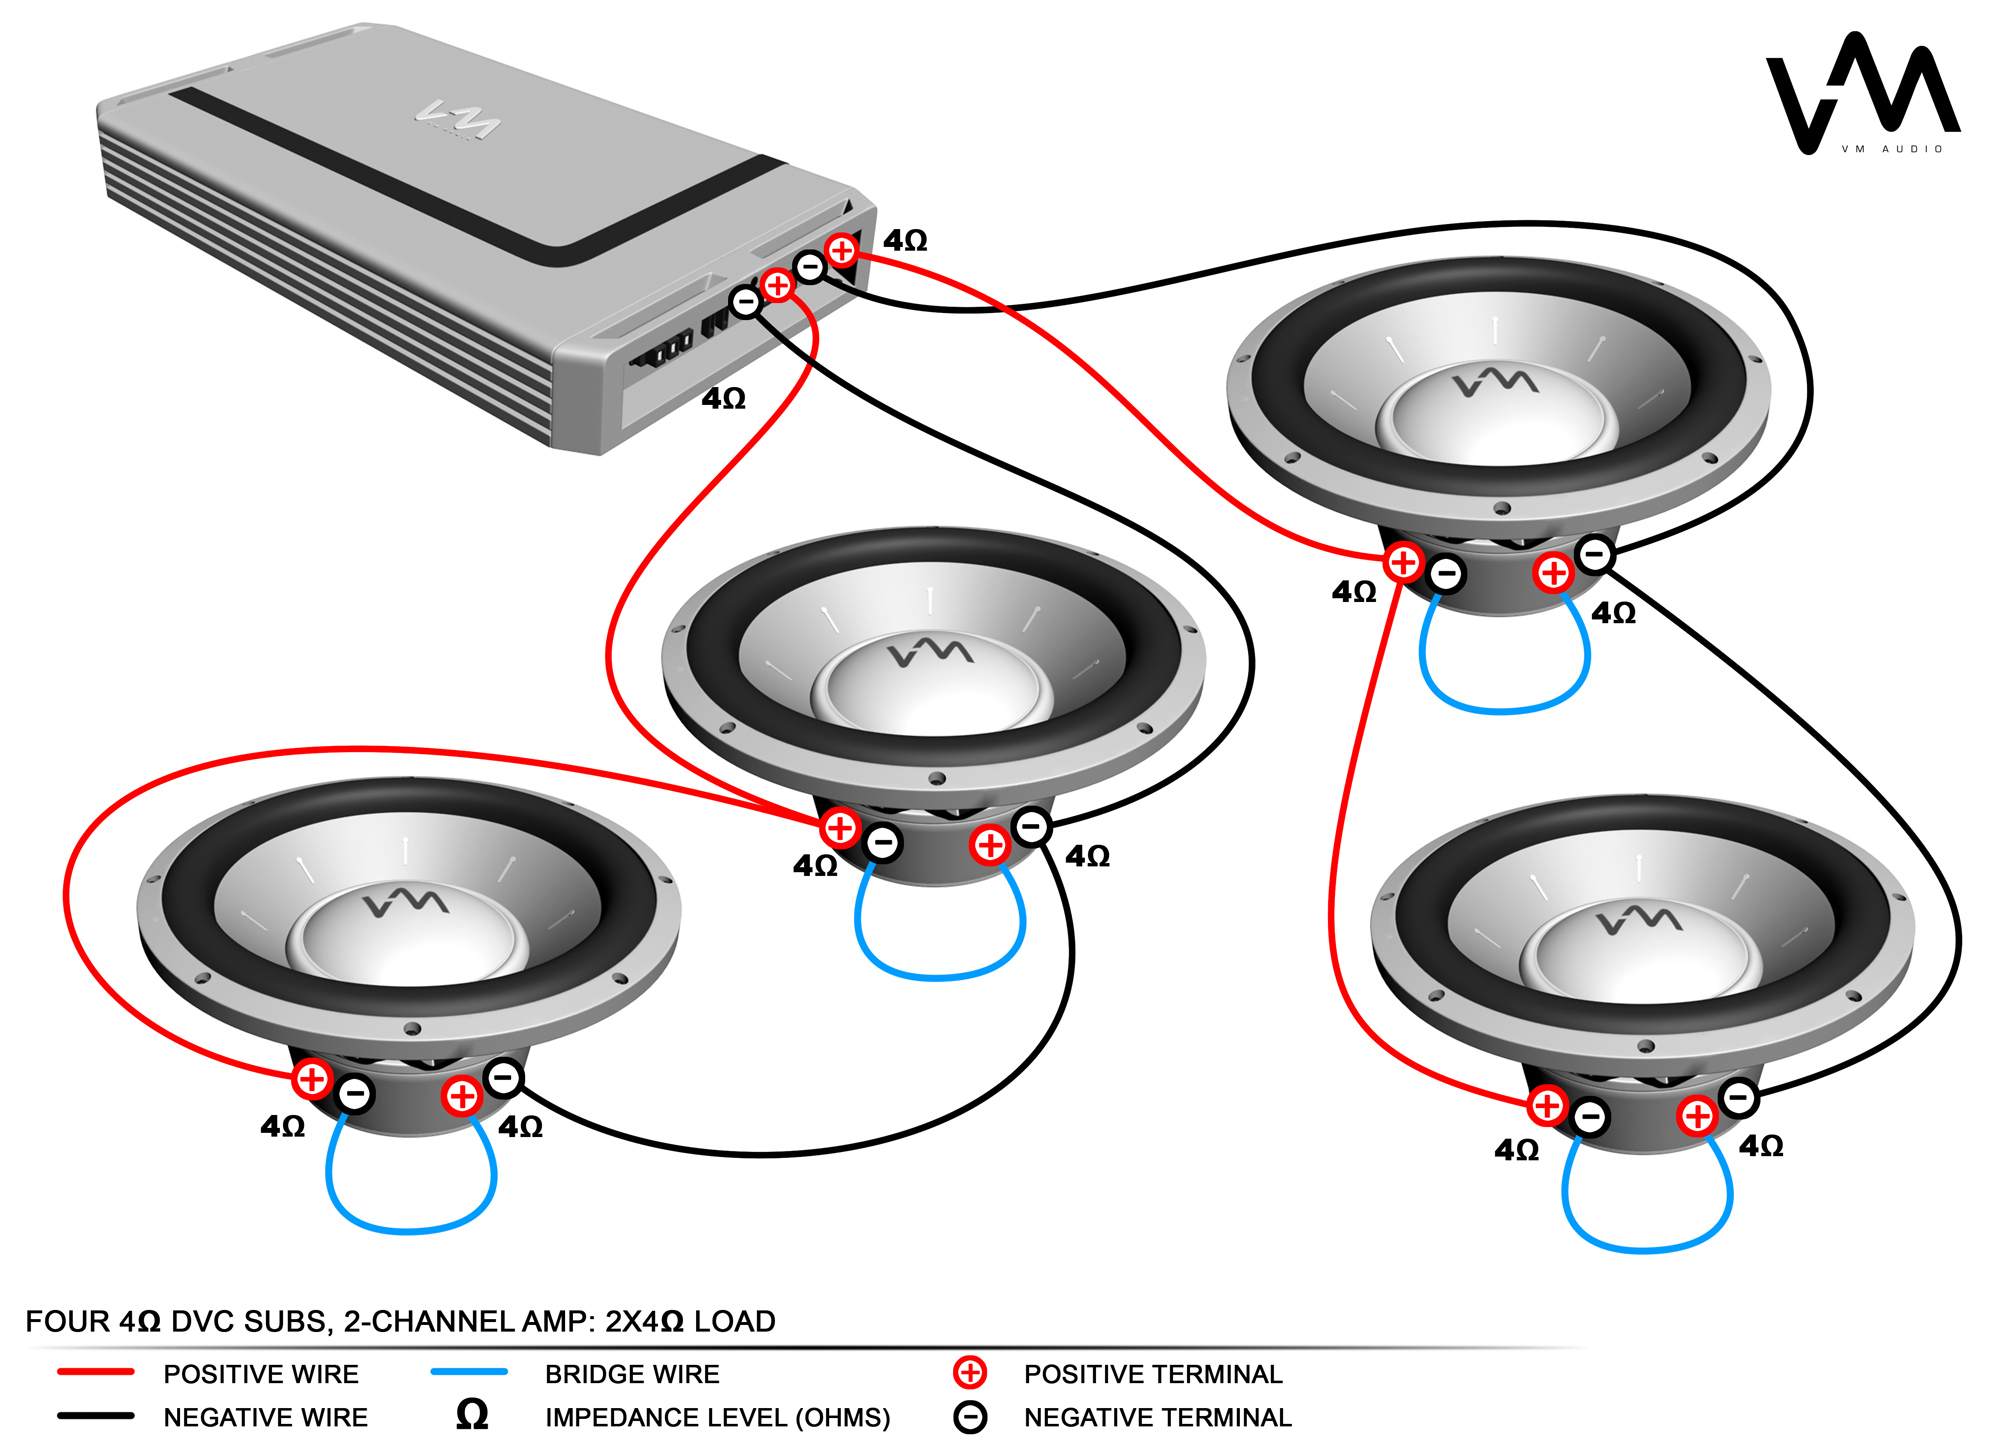 How To Connect Four Speakers To A 2-Channel Amp - - 2 Channel Amp Wiring Diagram